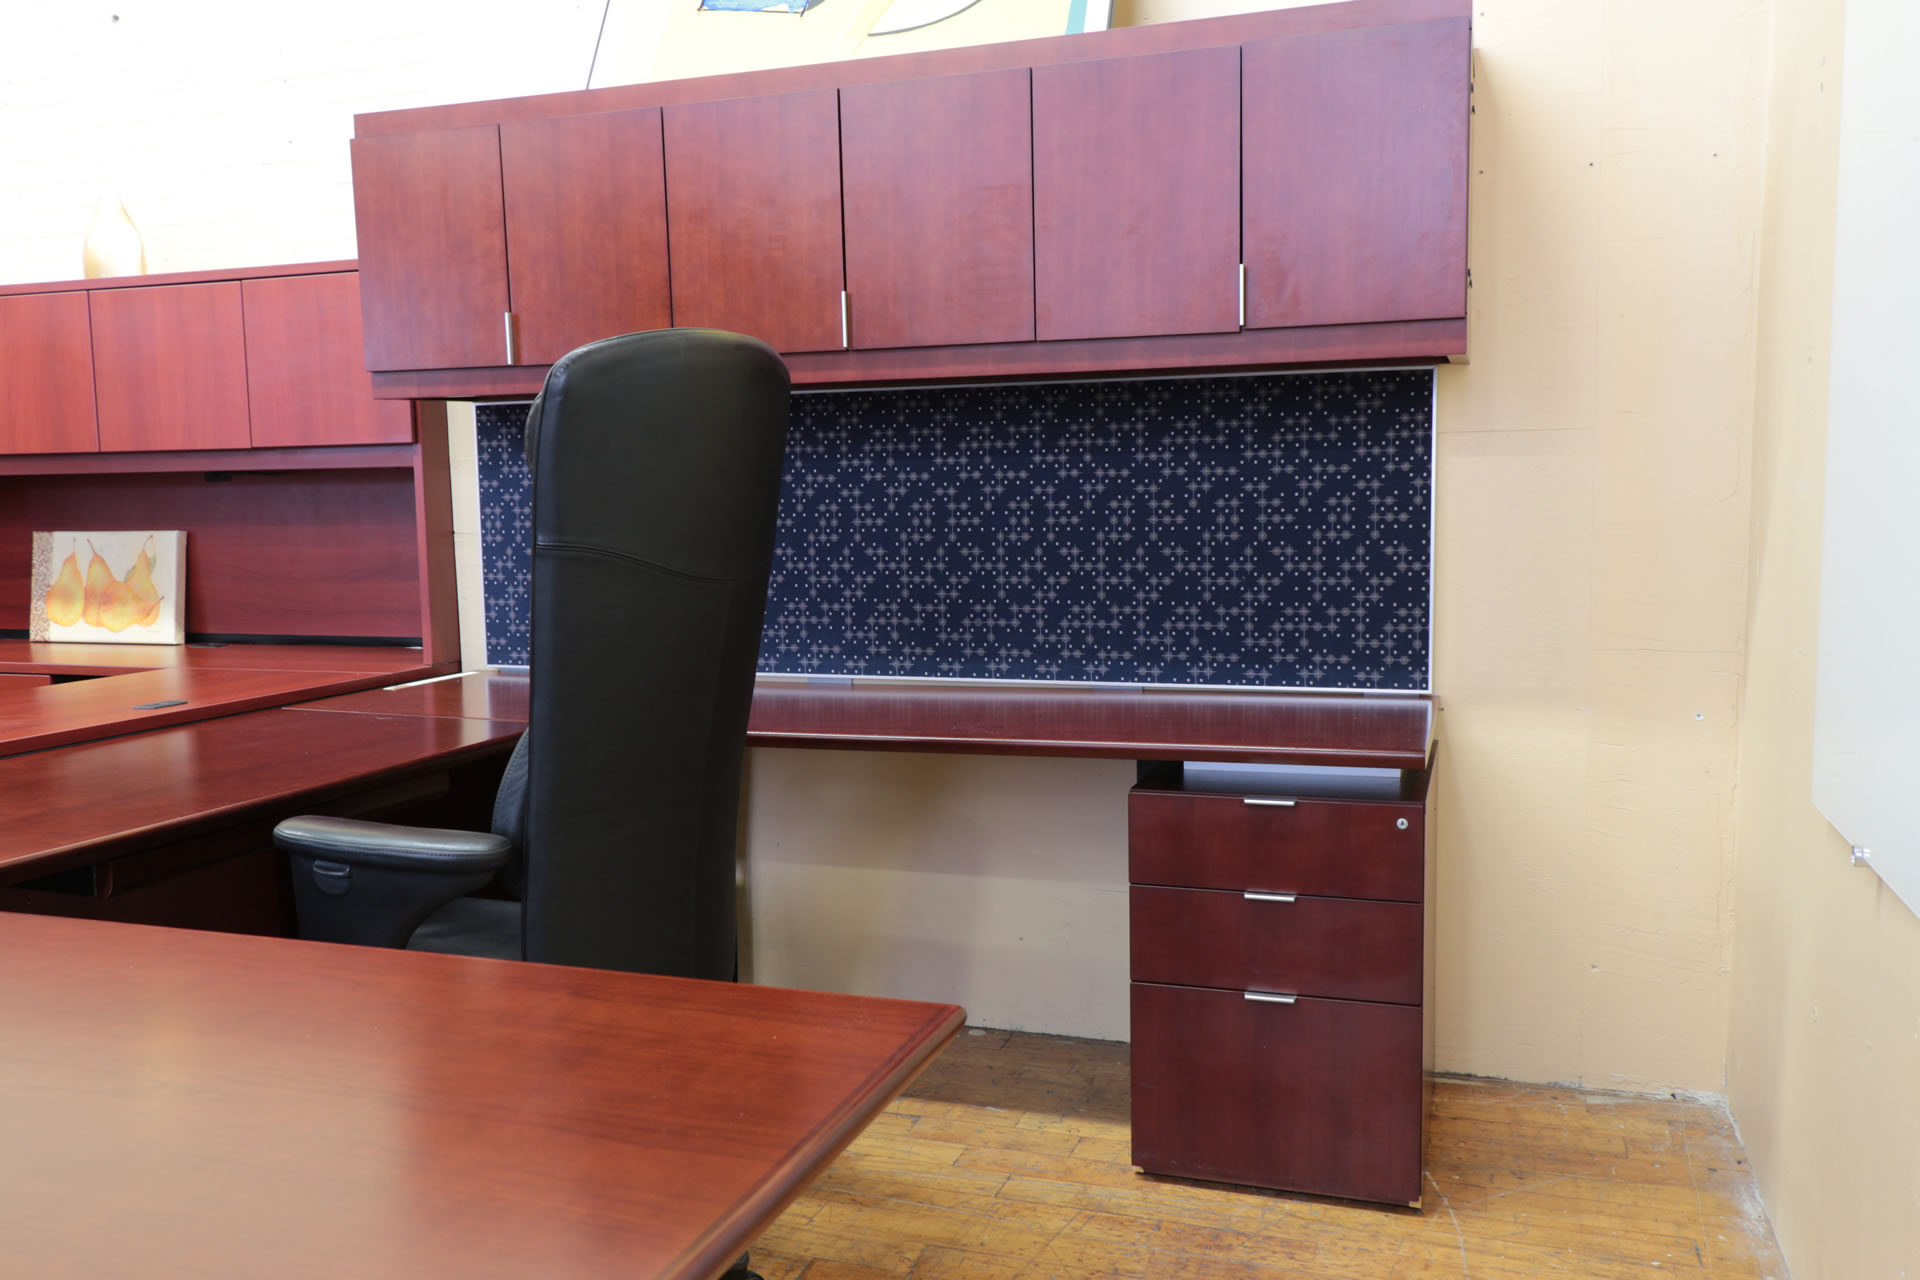 peartreeofficefurniture_peartreeofficefurniture_peartreeofficefurniture_img_9257.jpg